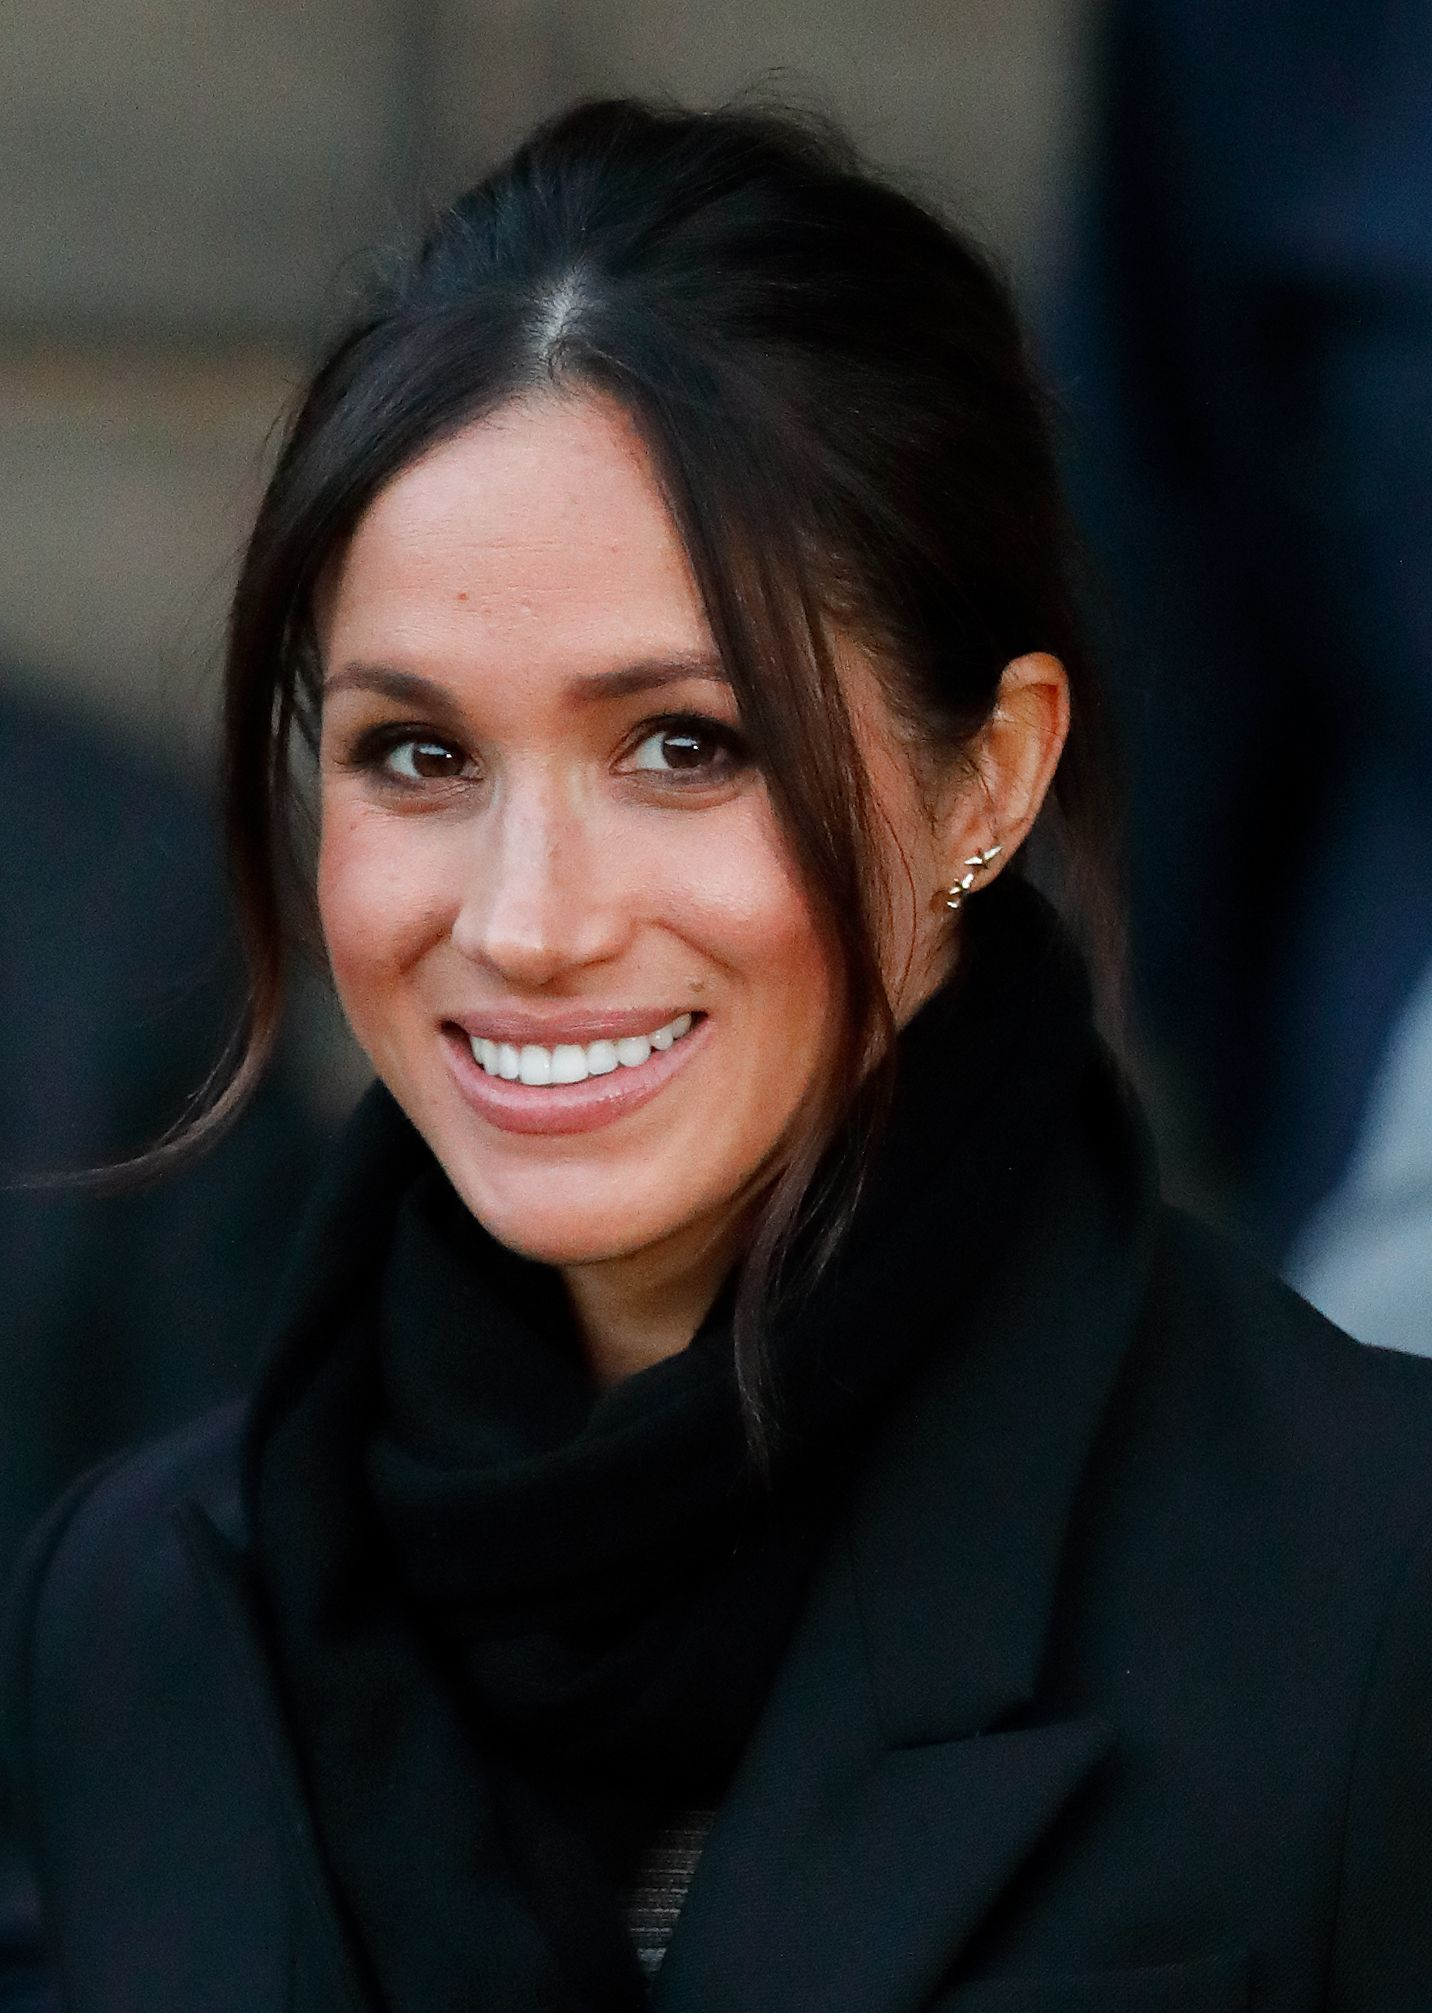 Meghan Markle's In-Person Trial Against The Mail on Sunday Delayed Until Fall 2021